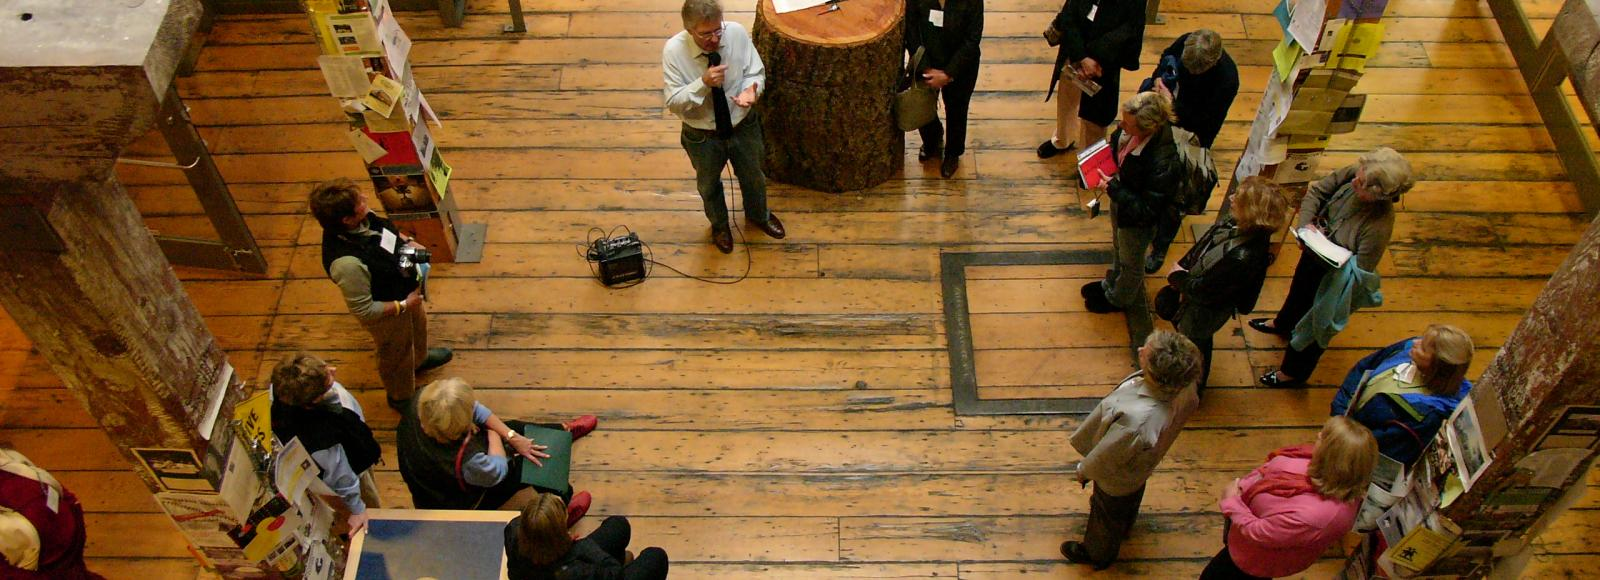 A view looking down into the atrium of the Natural Capital Center, which is full of light. A group surrounds Spencer Beebe, Ecotrust founder, who is standing next to a tall stump talking into a microphone.